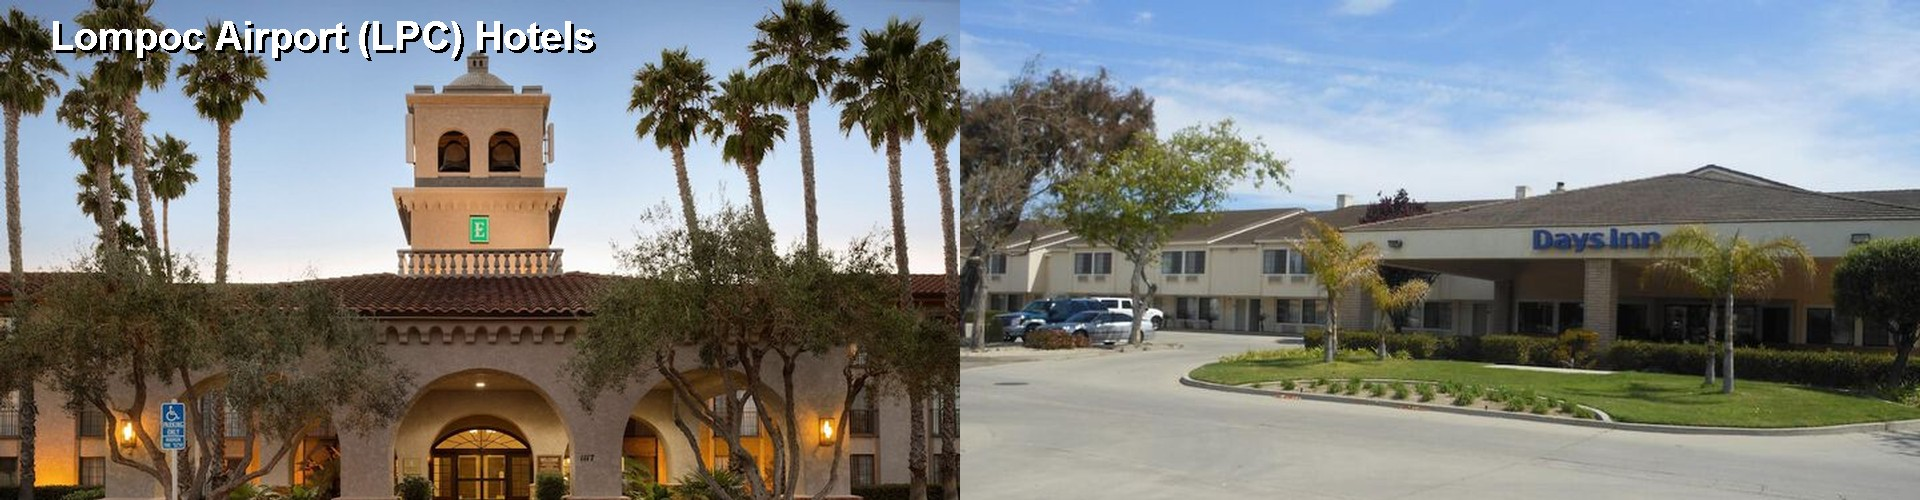 5 Best Hotels Near Lompoc Airport Lpc